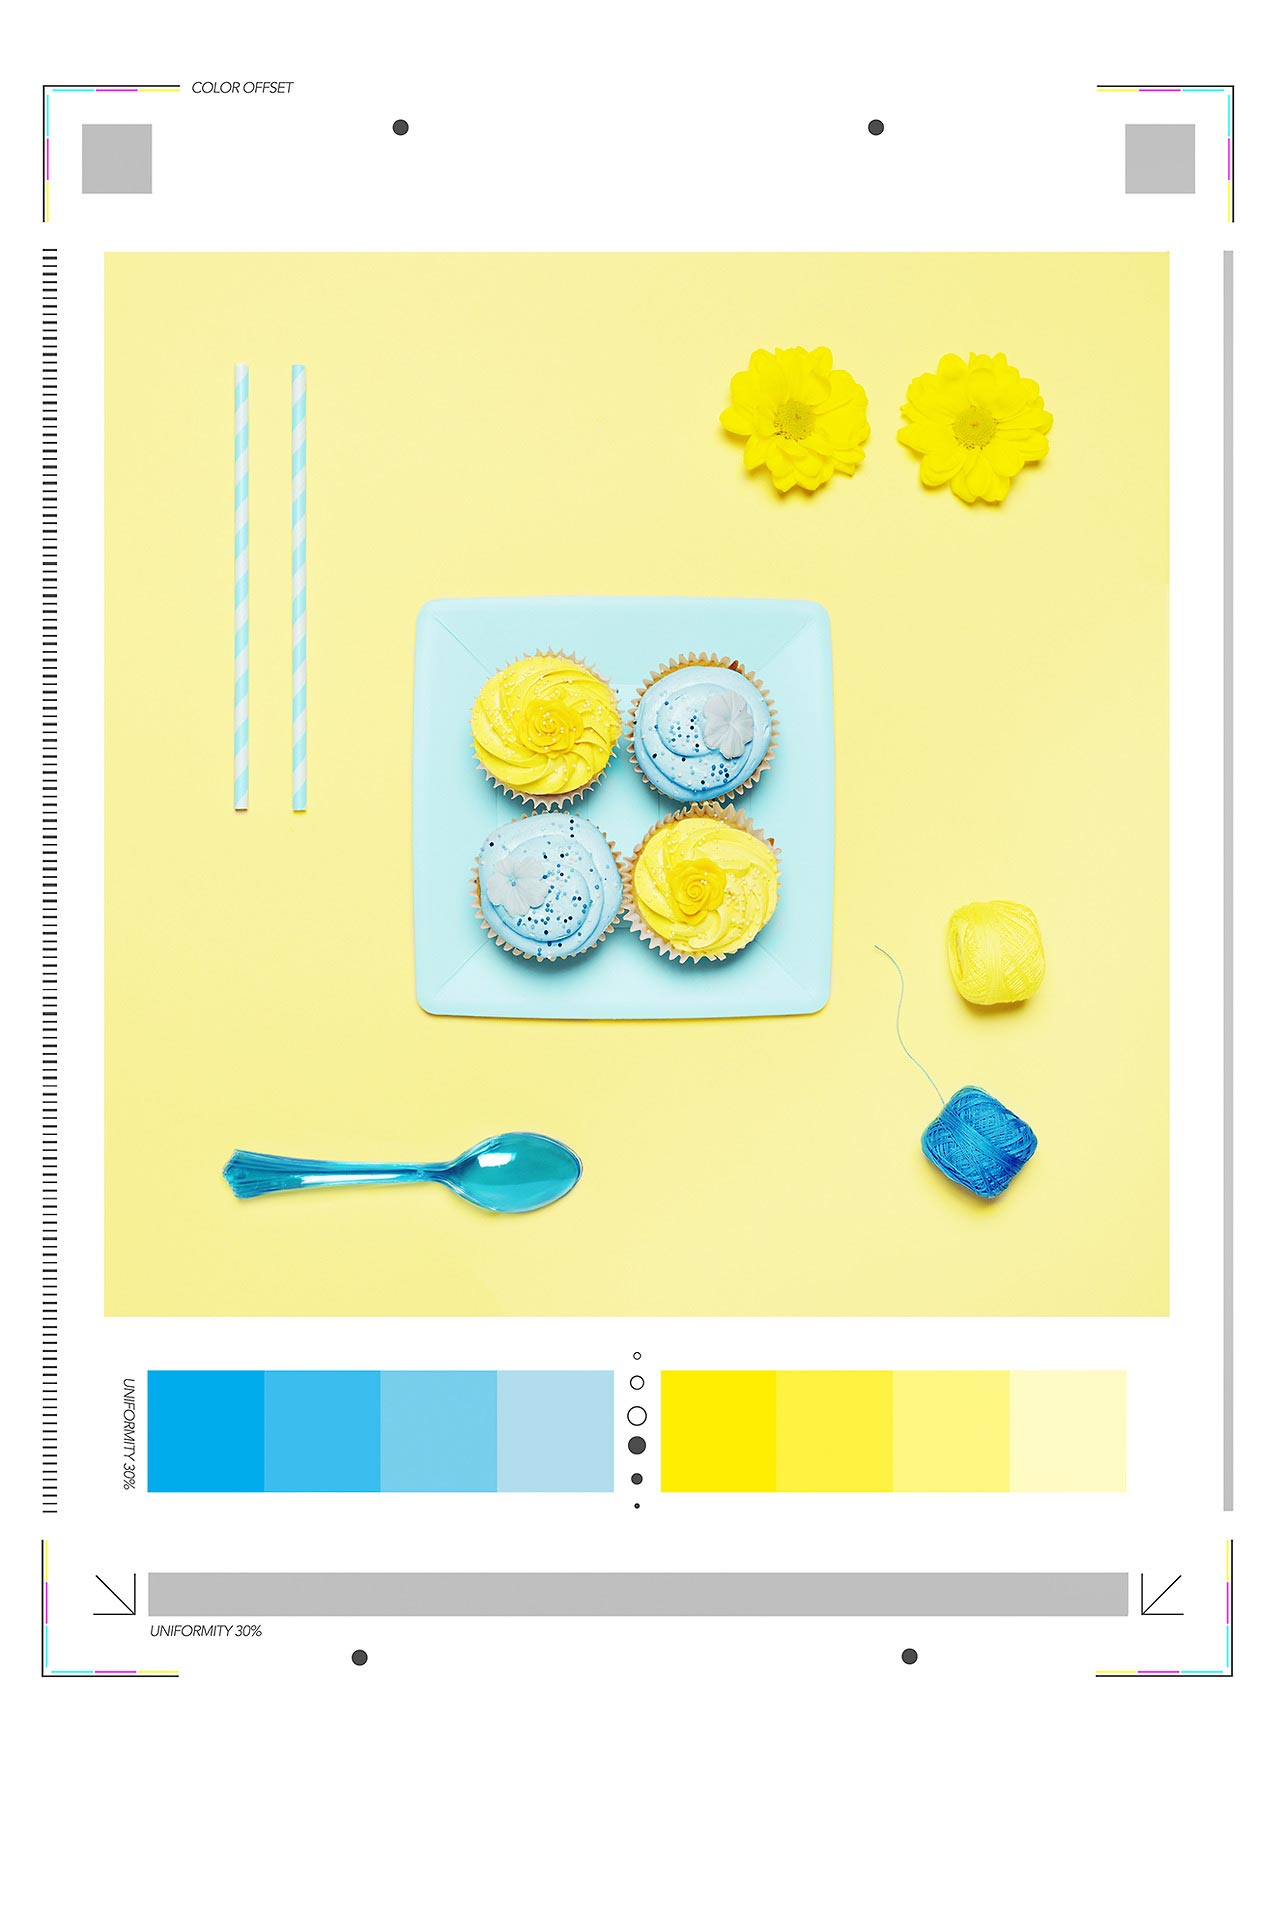 isabella-vacchi-color-coded-food-photography-9